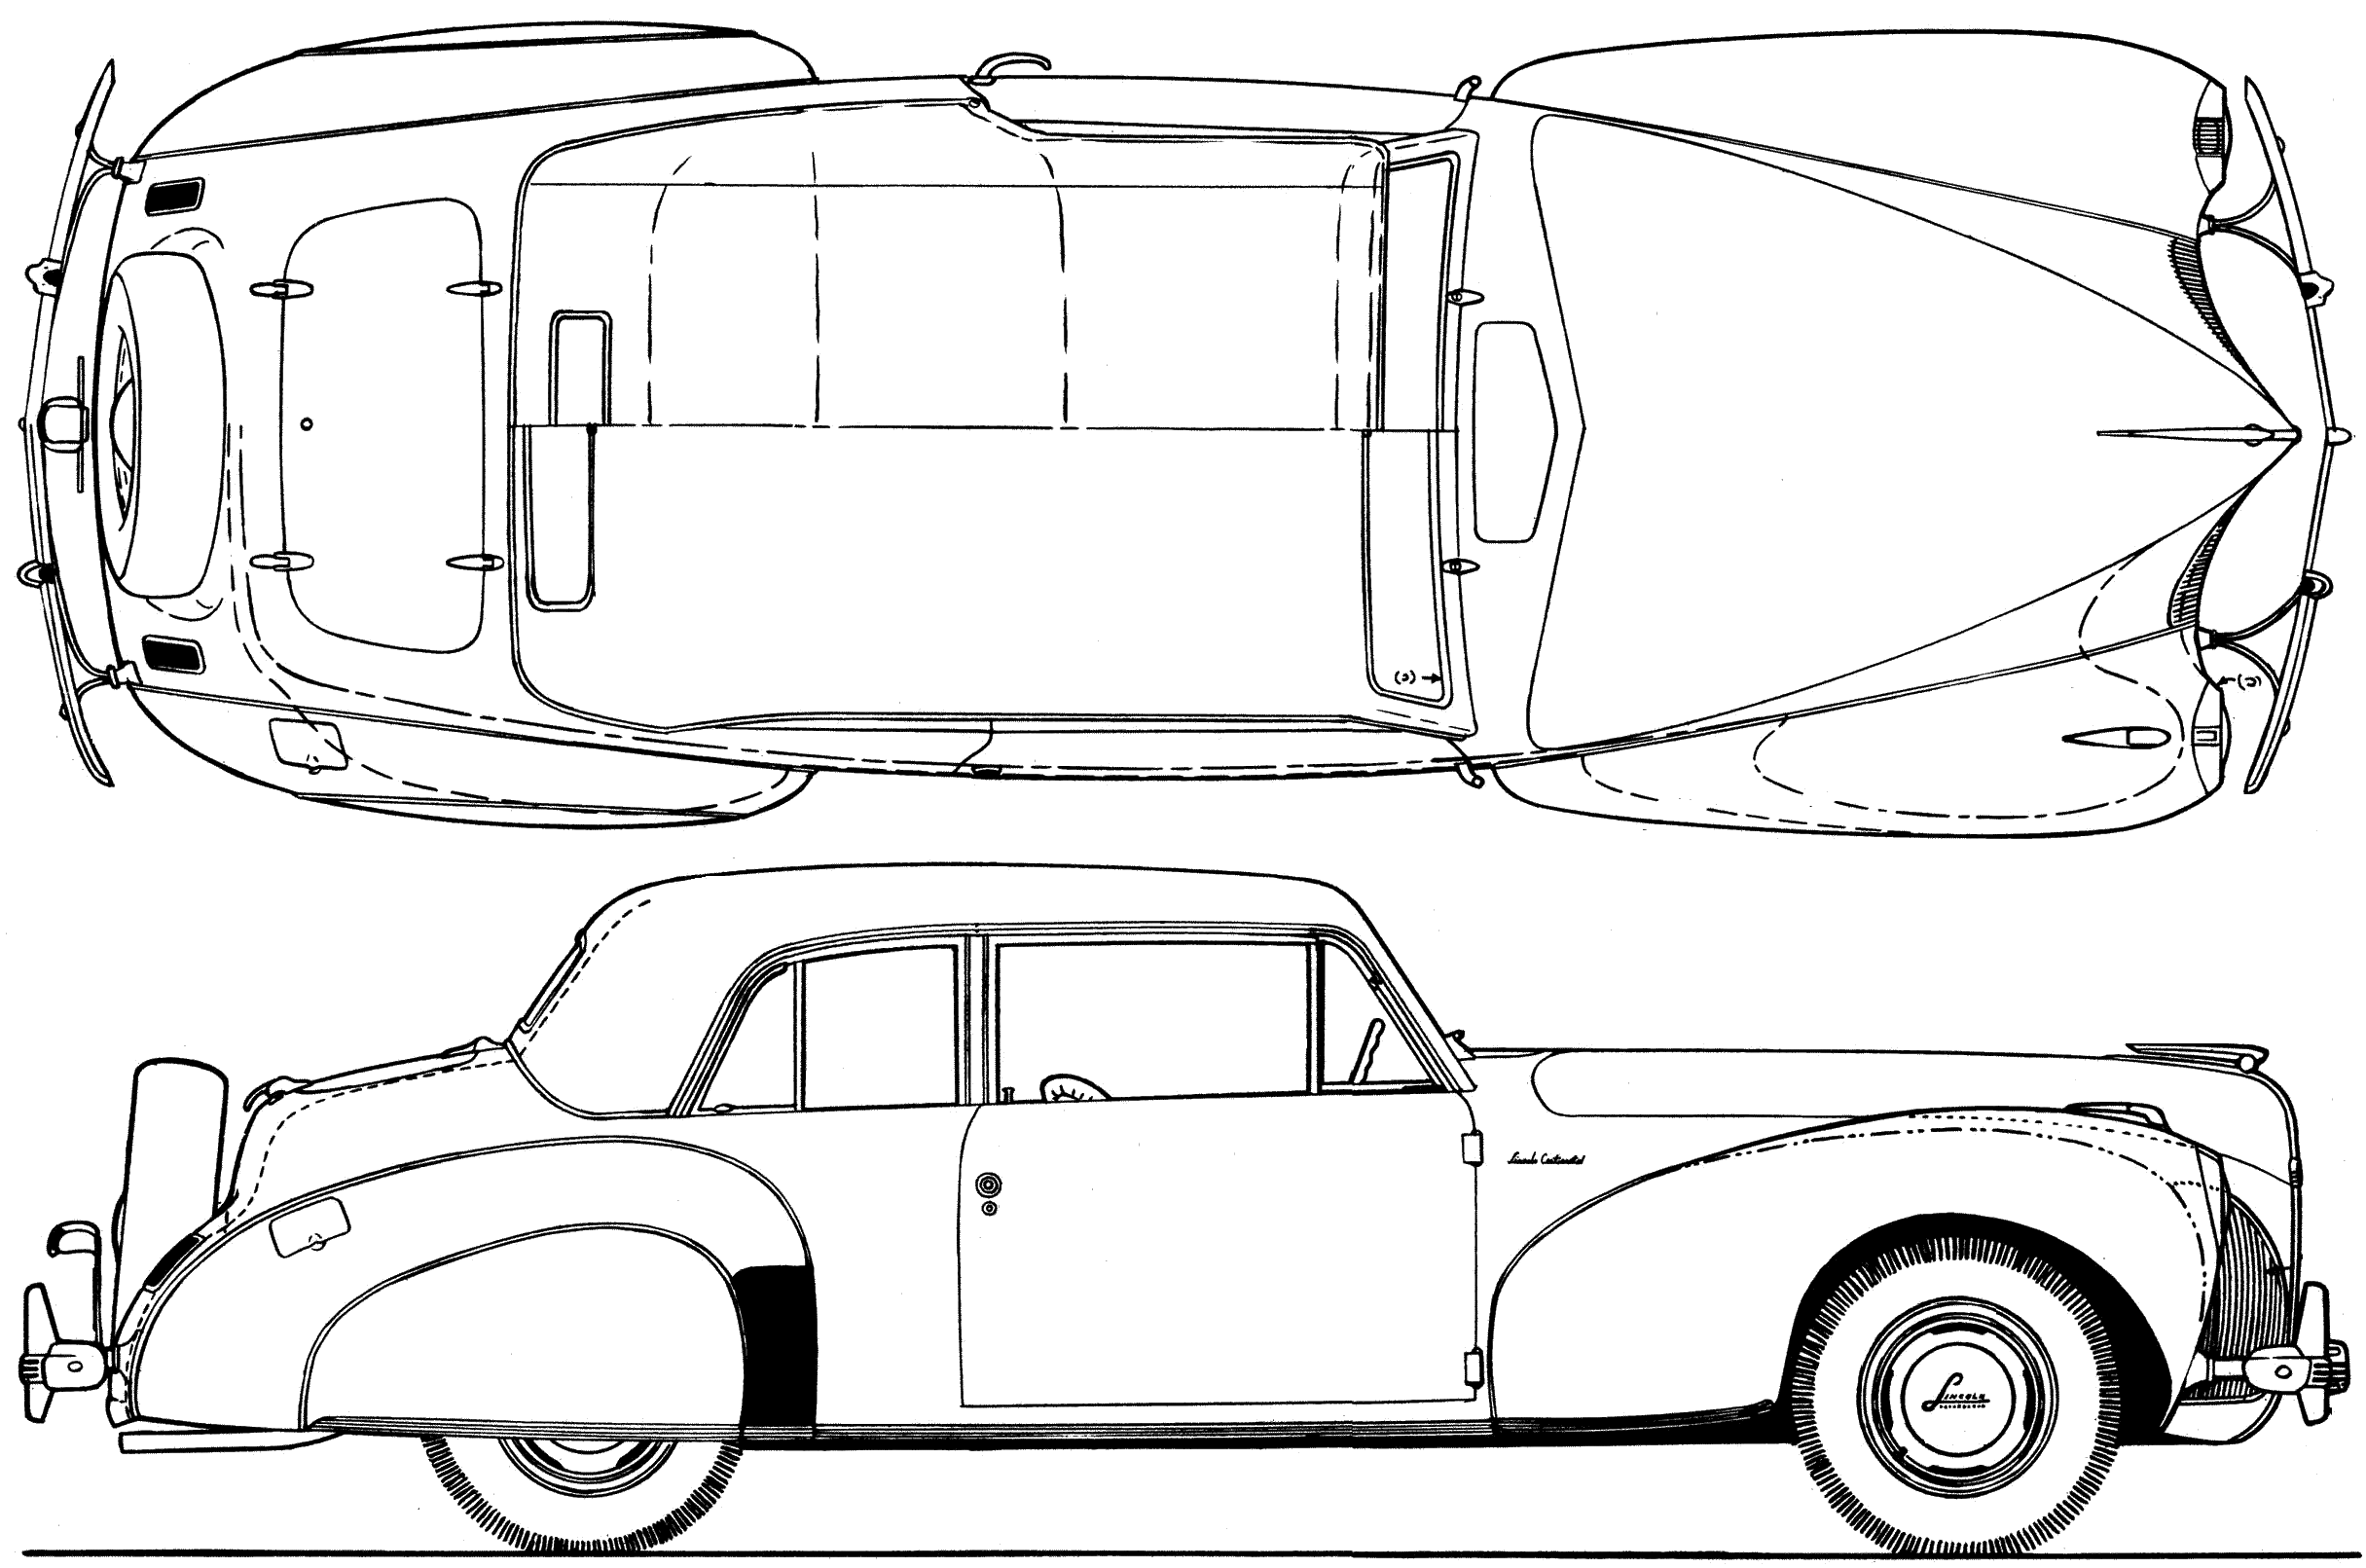 1940 lincoln continental v12 coupe blueprints free